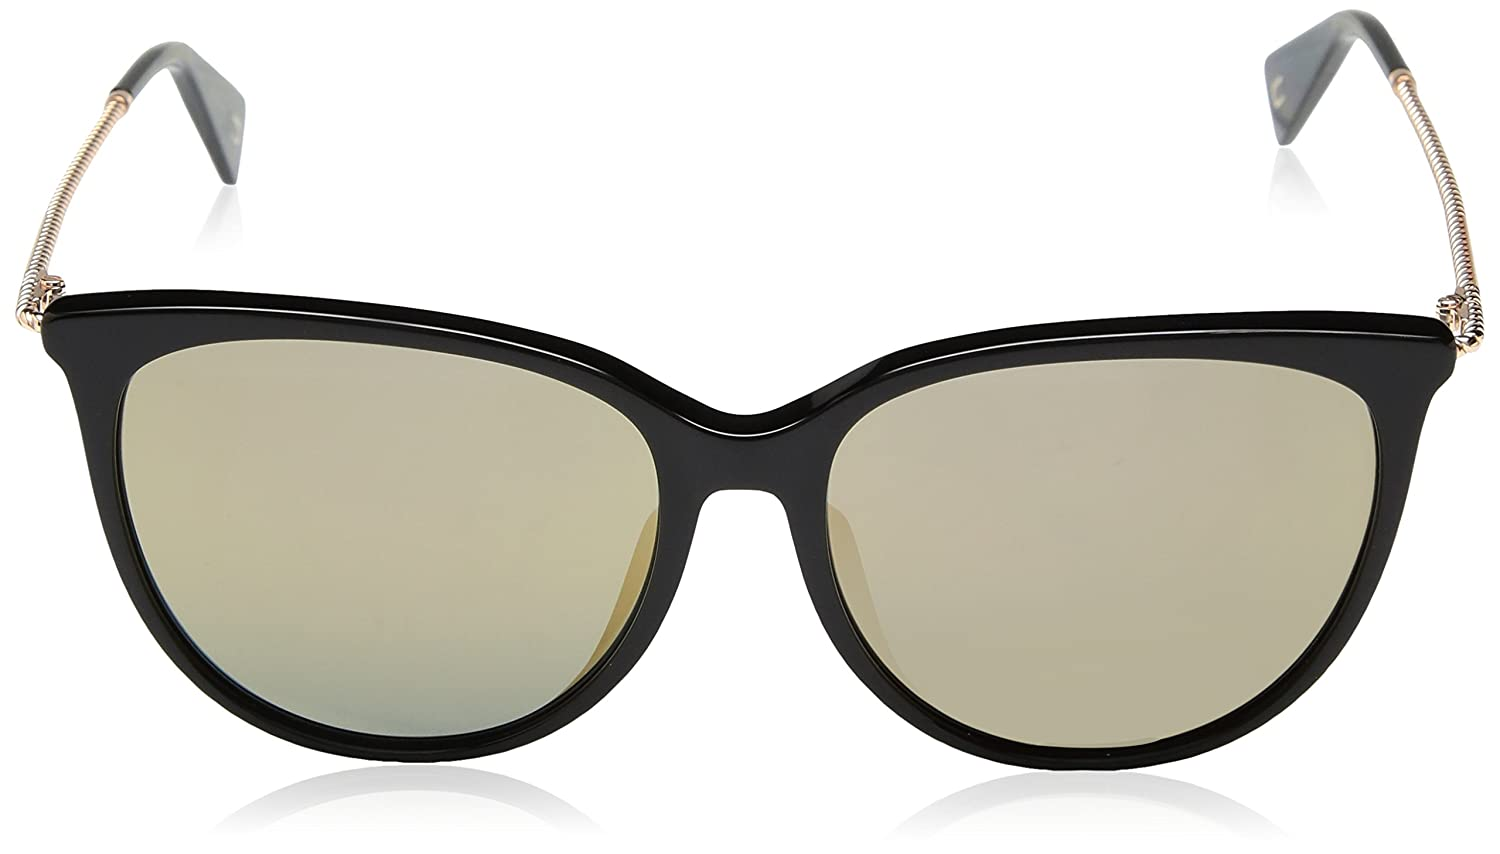 Marc Jacobs Womens Sunglasses